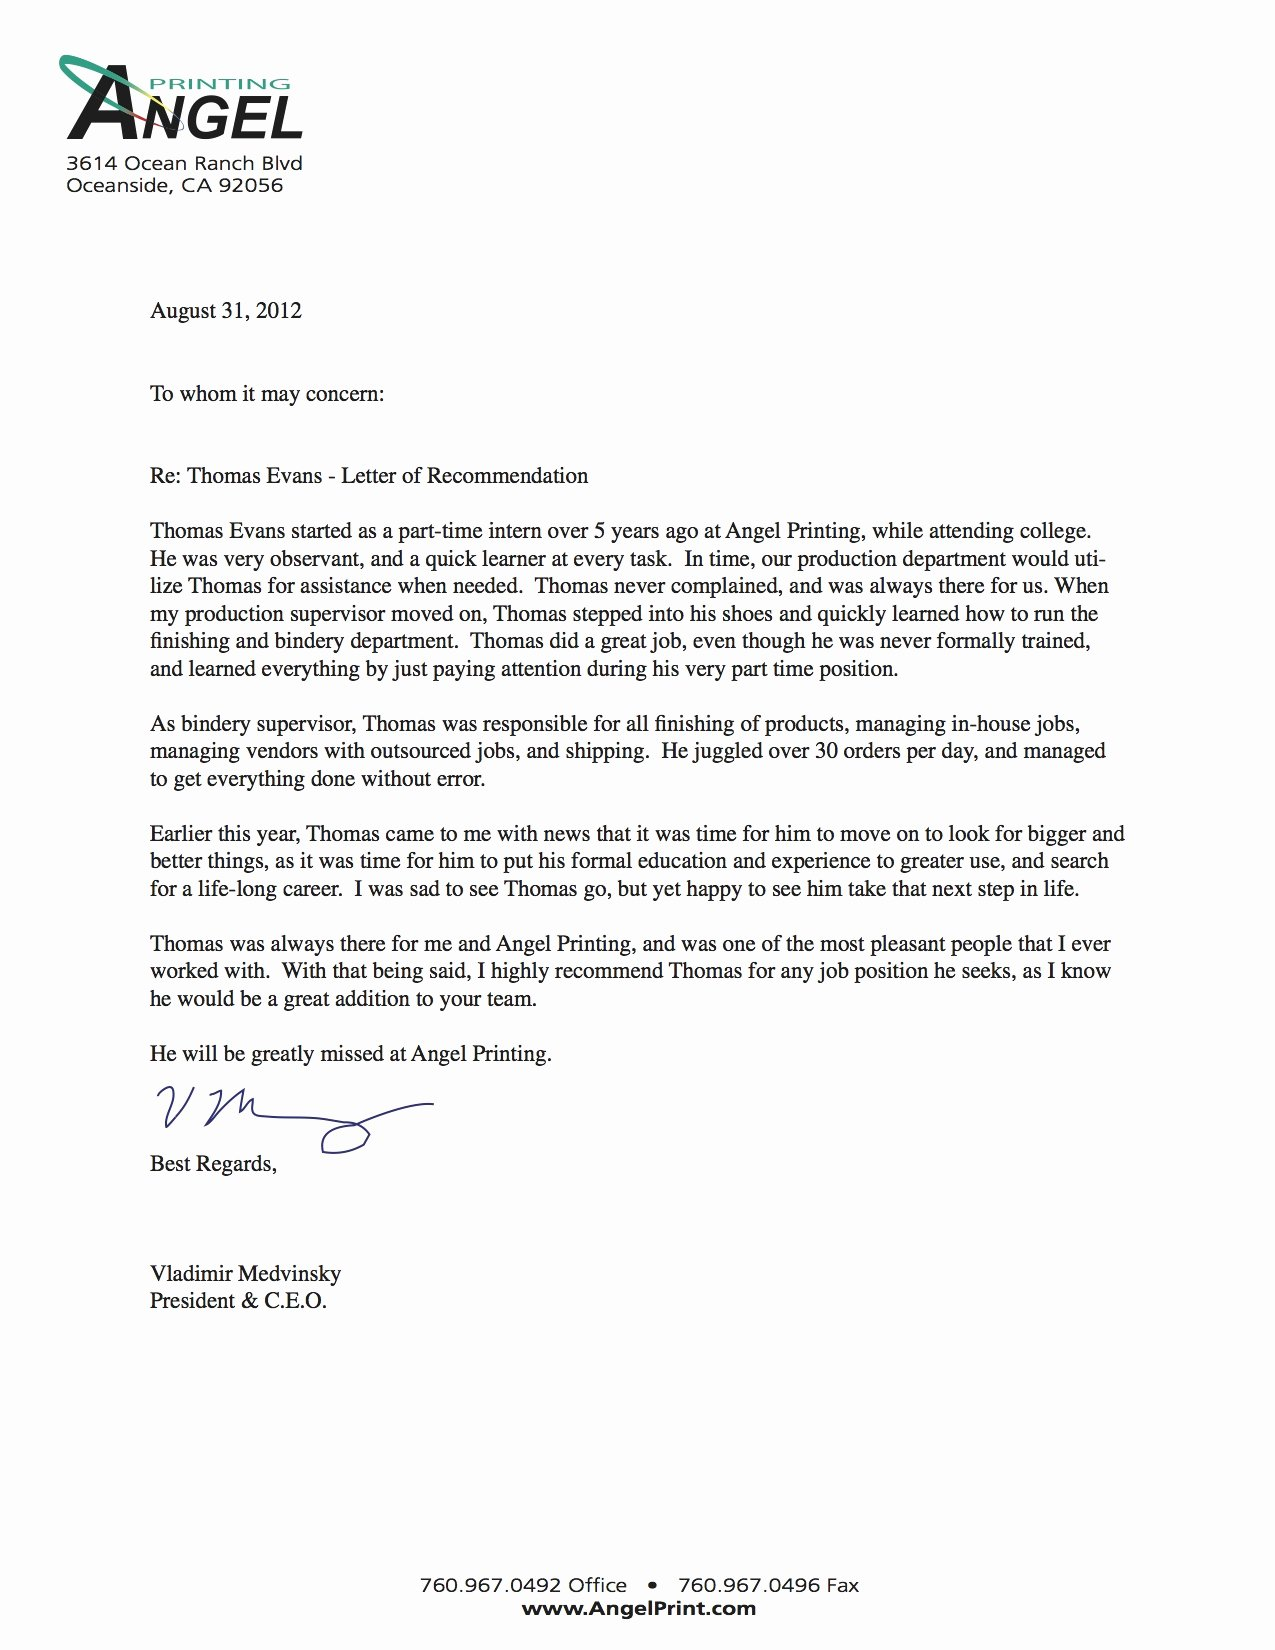 Letters Of Recommendation Template Beautiful Tips for Writing A Letter Of Re Mendation